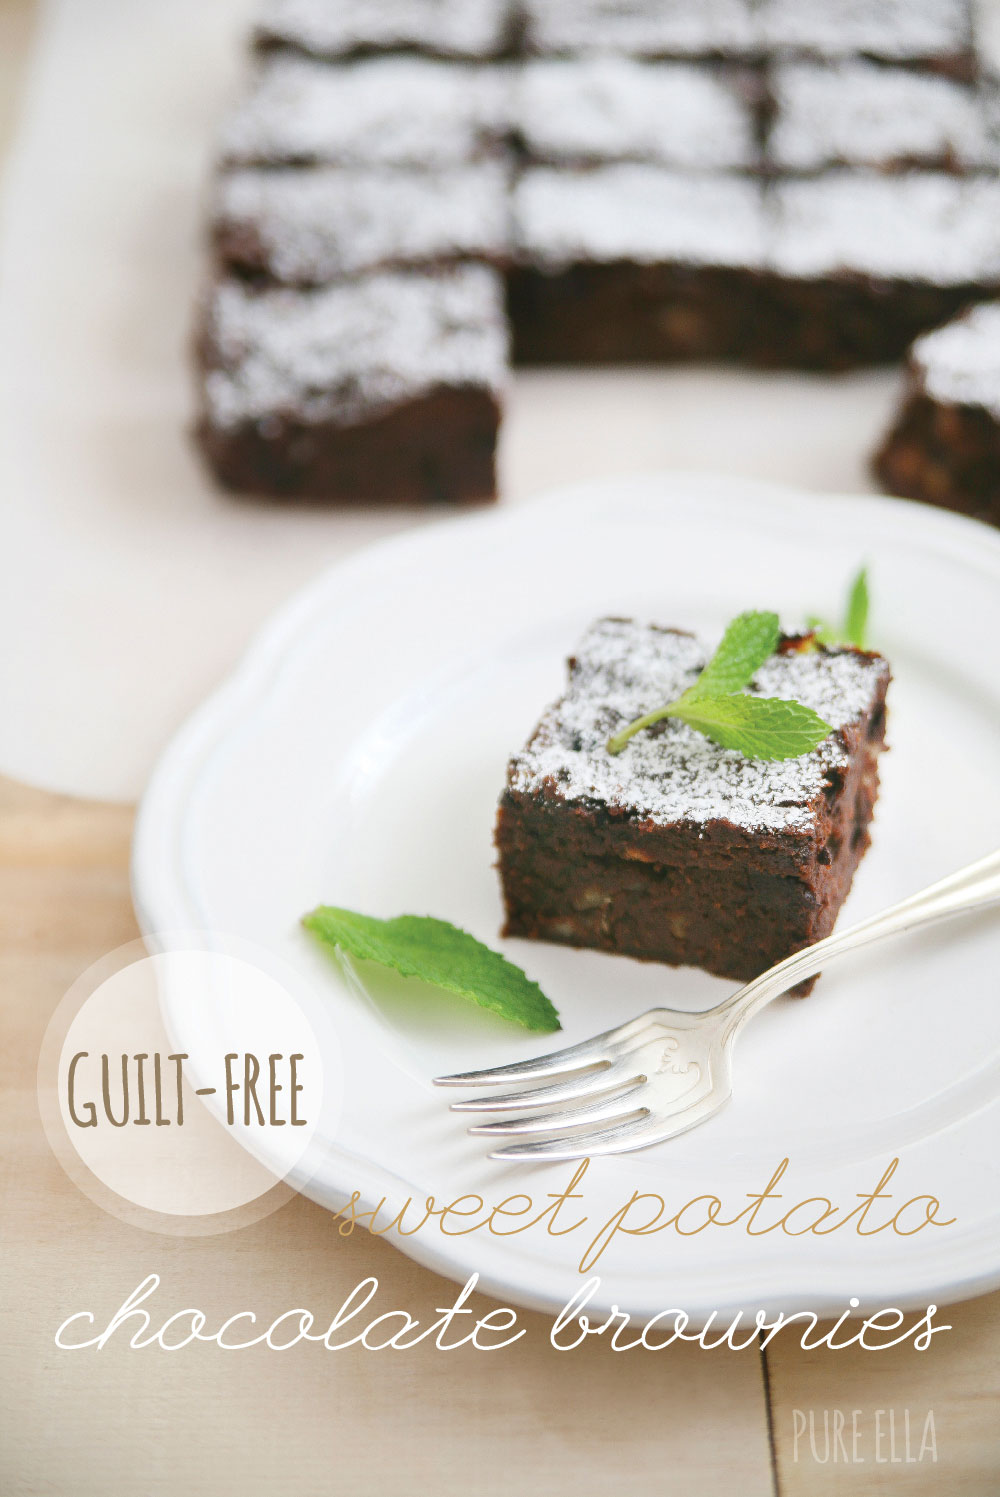 Pure-Ella-Guilt-free-Chocolate-Sweet-Potato-Brownies